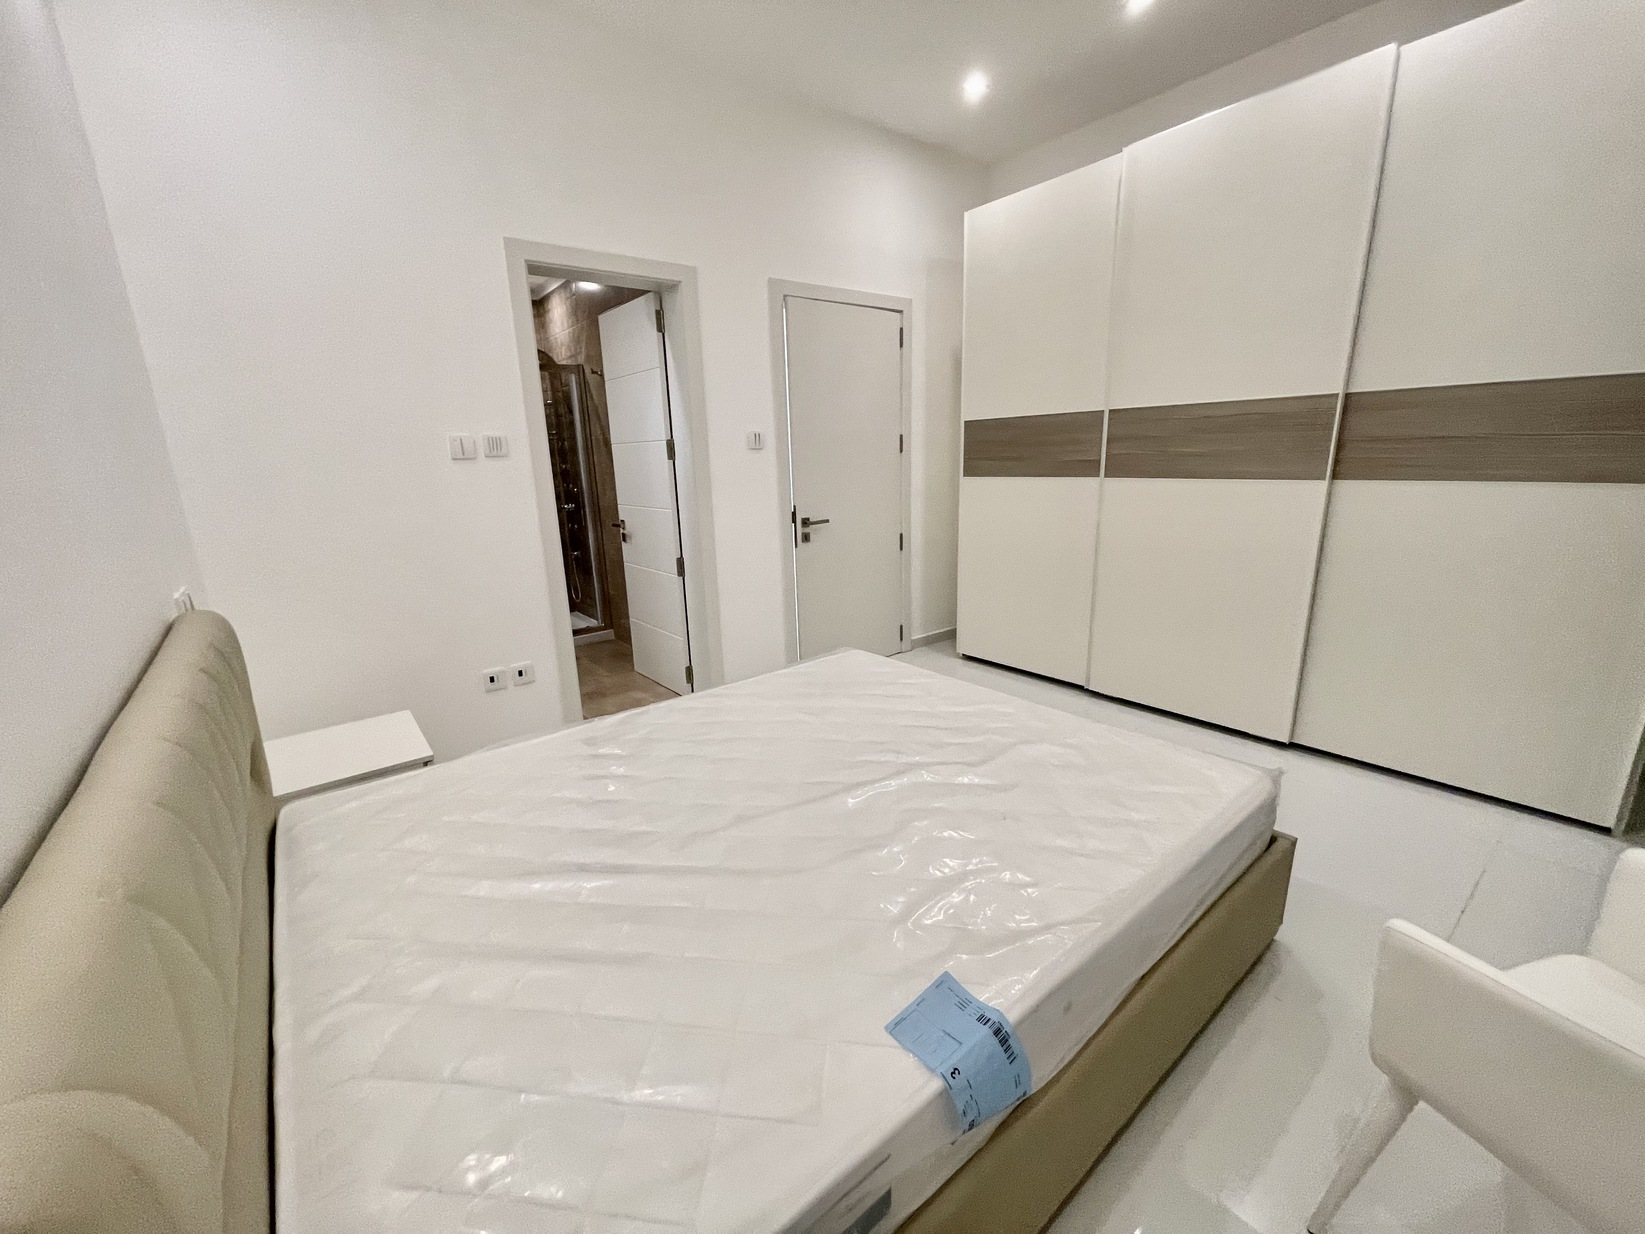 3 bed Apartment For Rent in Zejtun, Zejtun - thumb 14